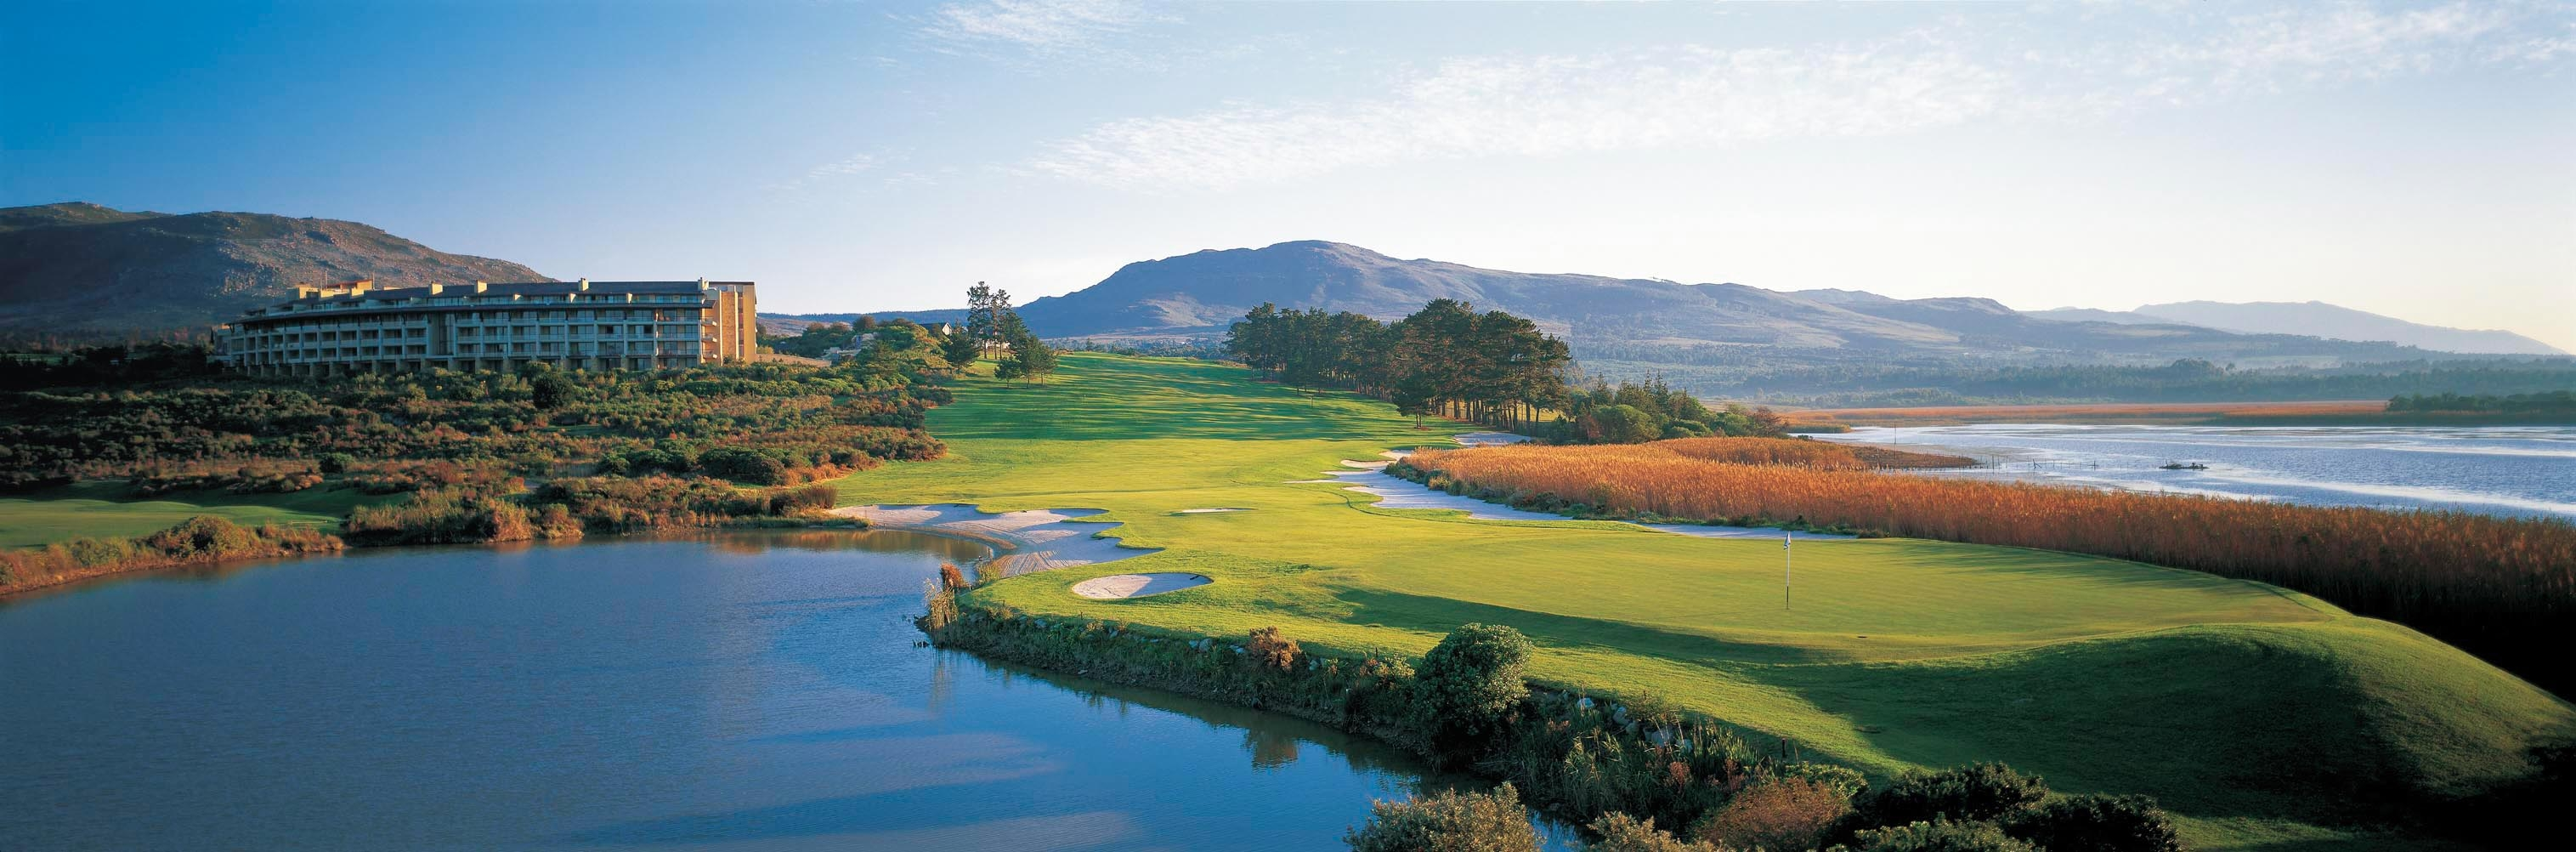 South Africa Best Golf And Diving